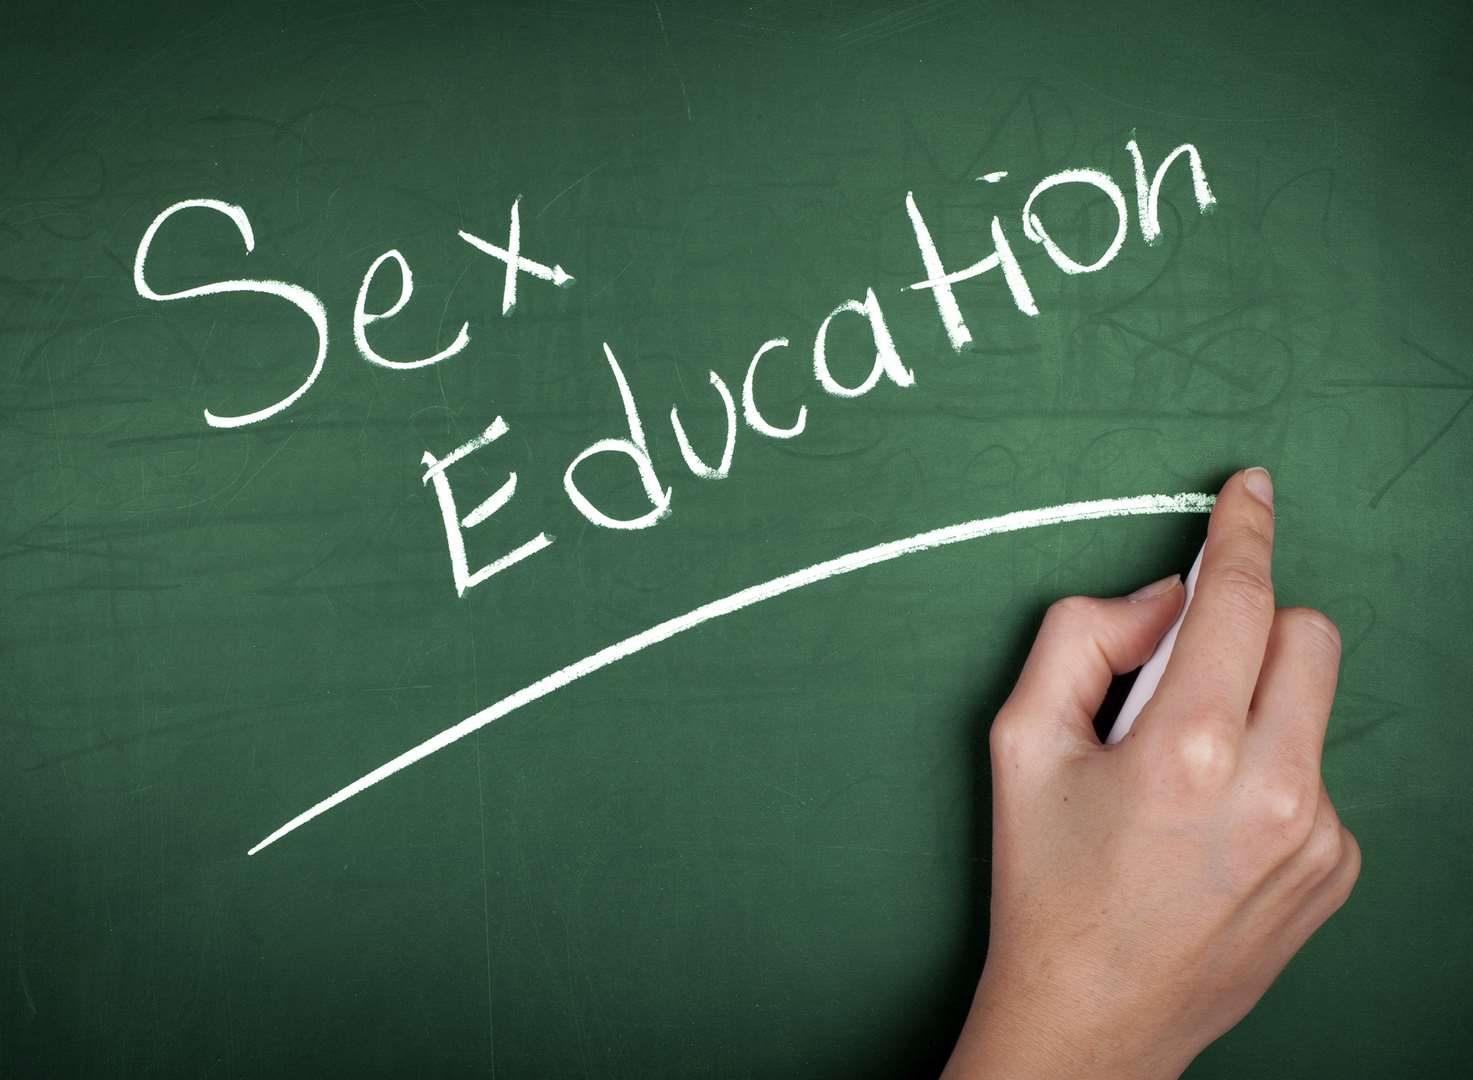 What should be covered in sex education?